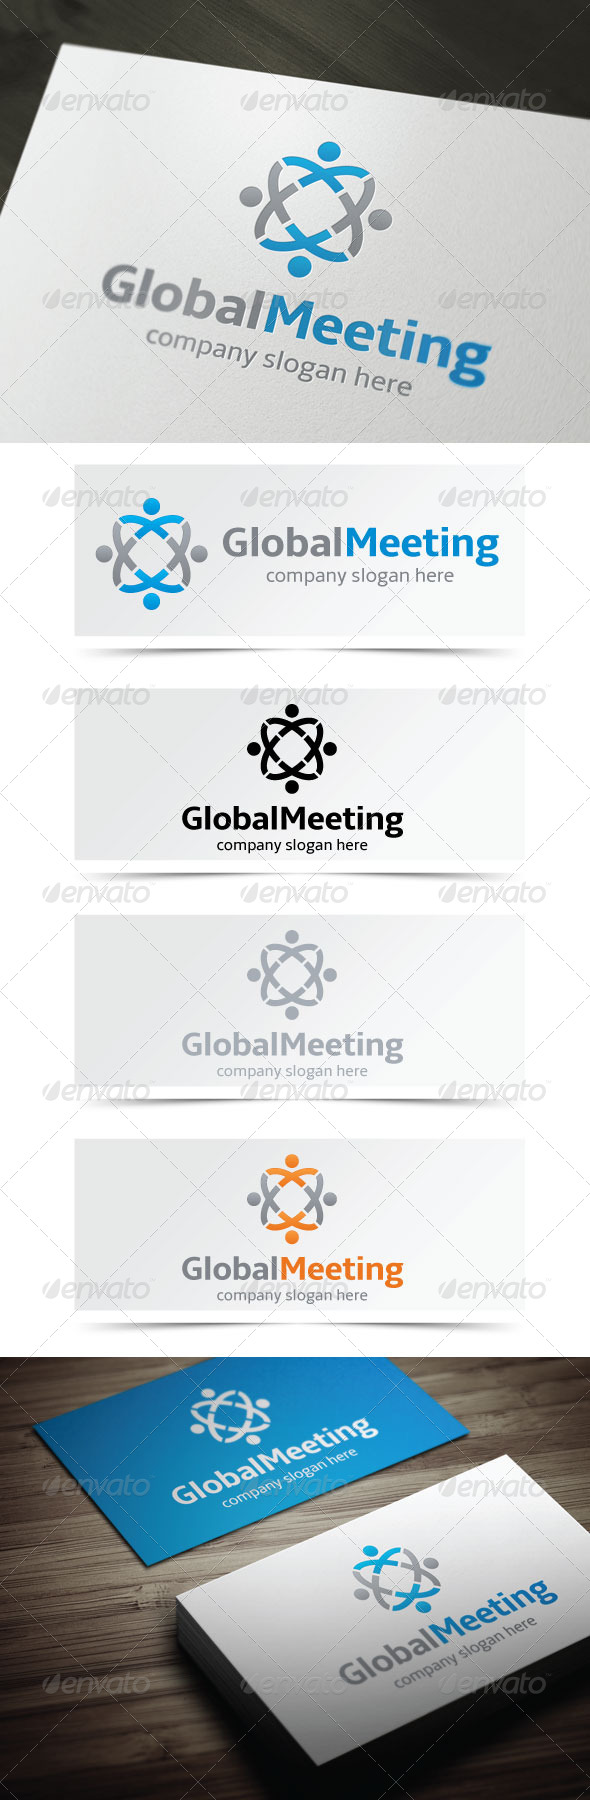 GraphicRiver Global Meeting 4843735